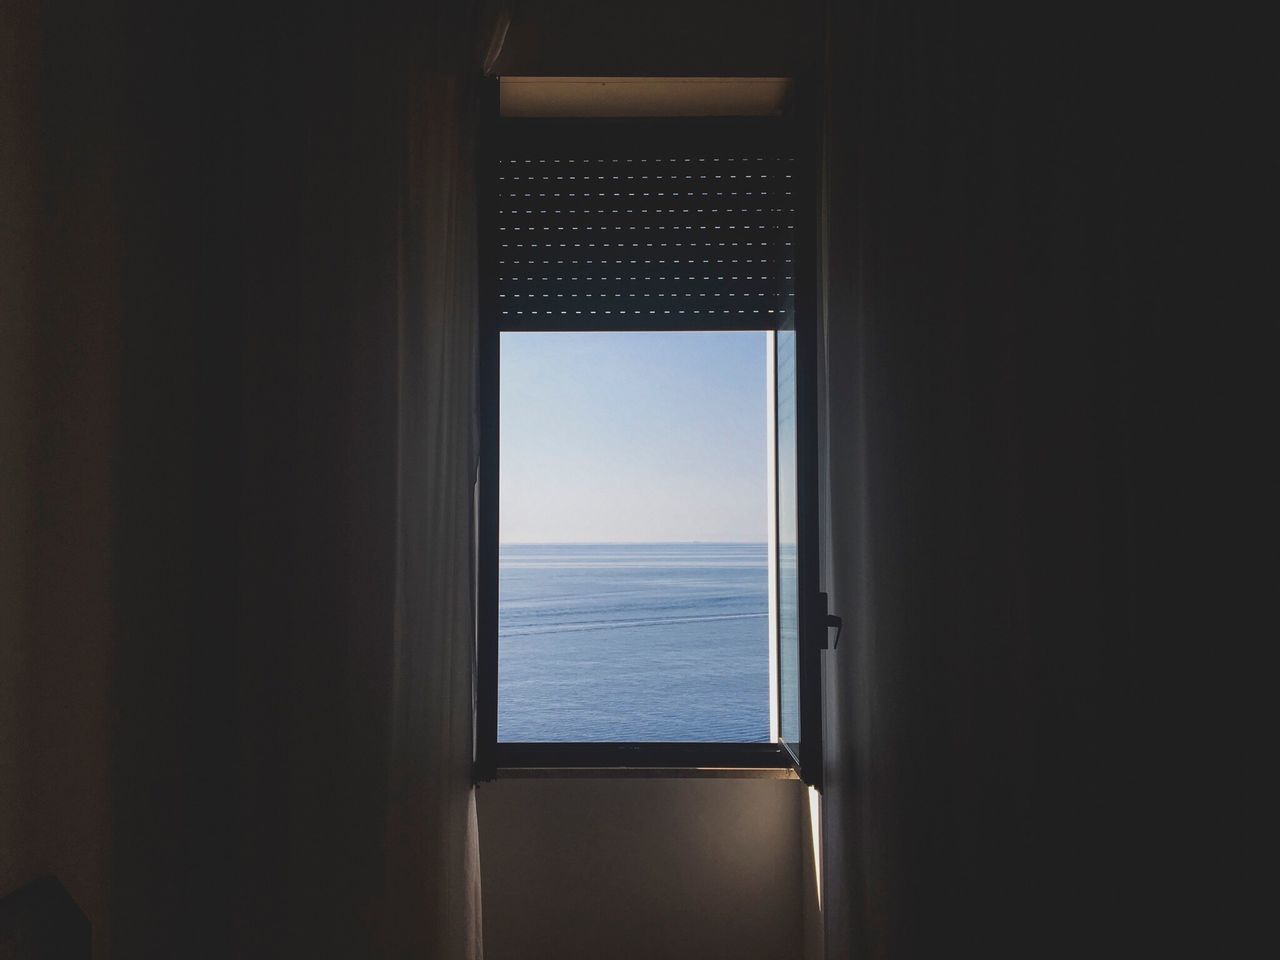 Dream Window Sea Sea And Sky High Contrast +5 Turnbacktime Summer Winter Light Shadow Room Goodvibes Santa Cesarea Terme Day Italy Italia David De La Cruz Delacruzfotografia Colors No People